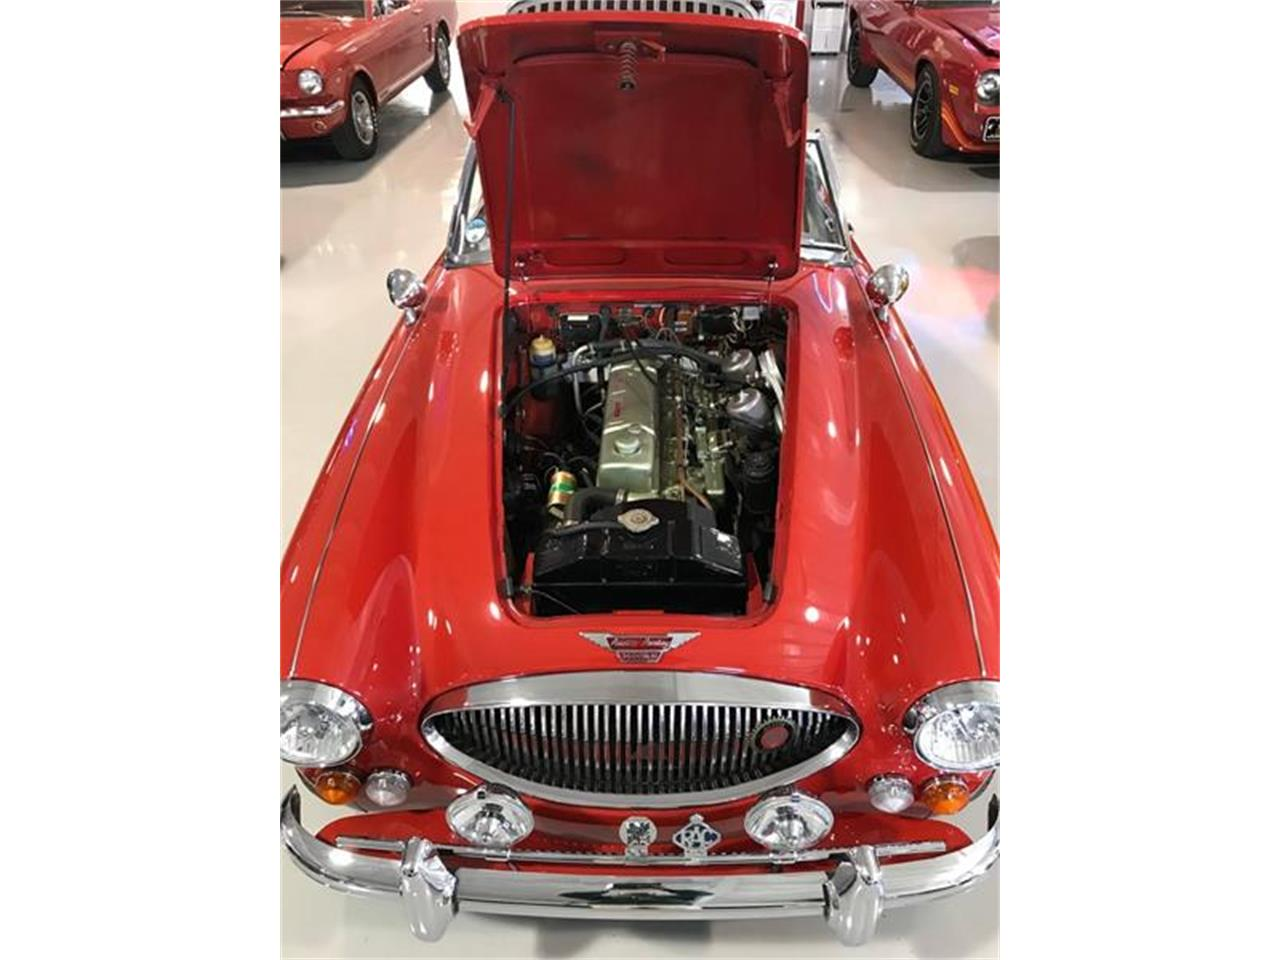 Large Picture of 1966 Austin-Healey 3000 located in Fredericksburg Texas - $59,500.00 Offered by Street Dreams Texas - PLVW